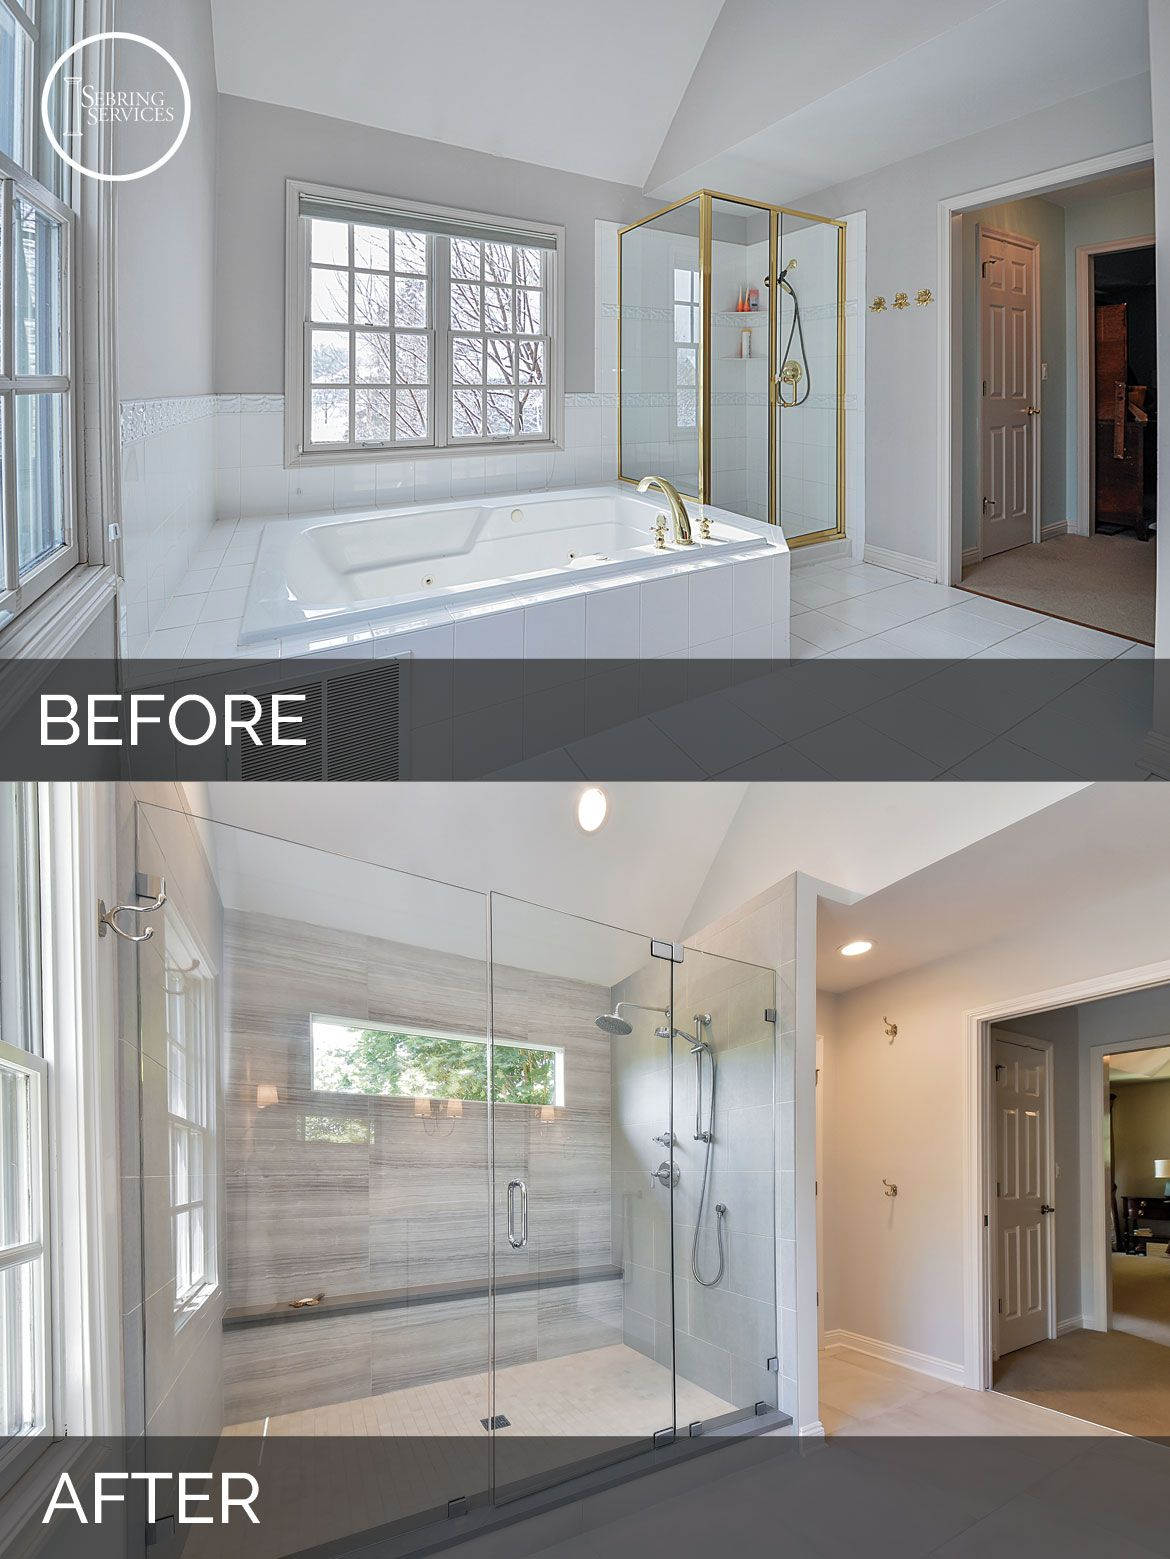 Master Bathroom Remodels Before And After carl & susan's master bath before & after pictures | master